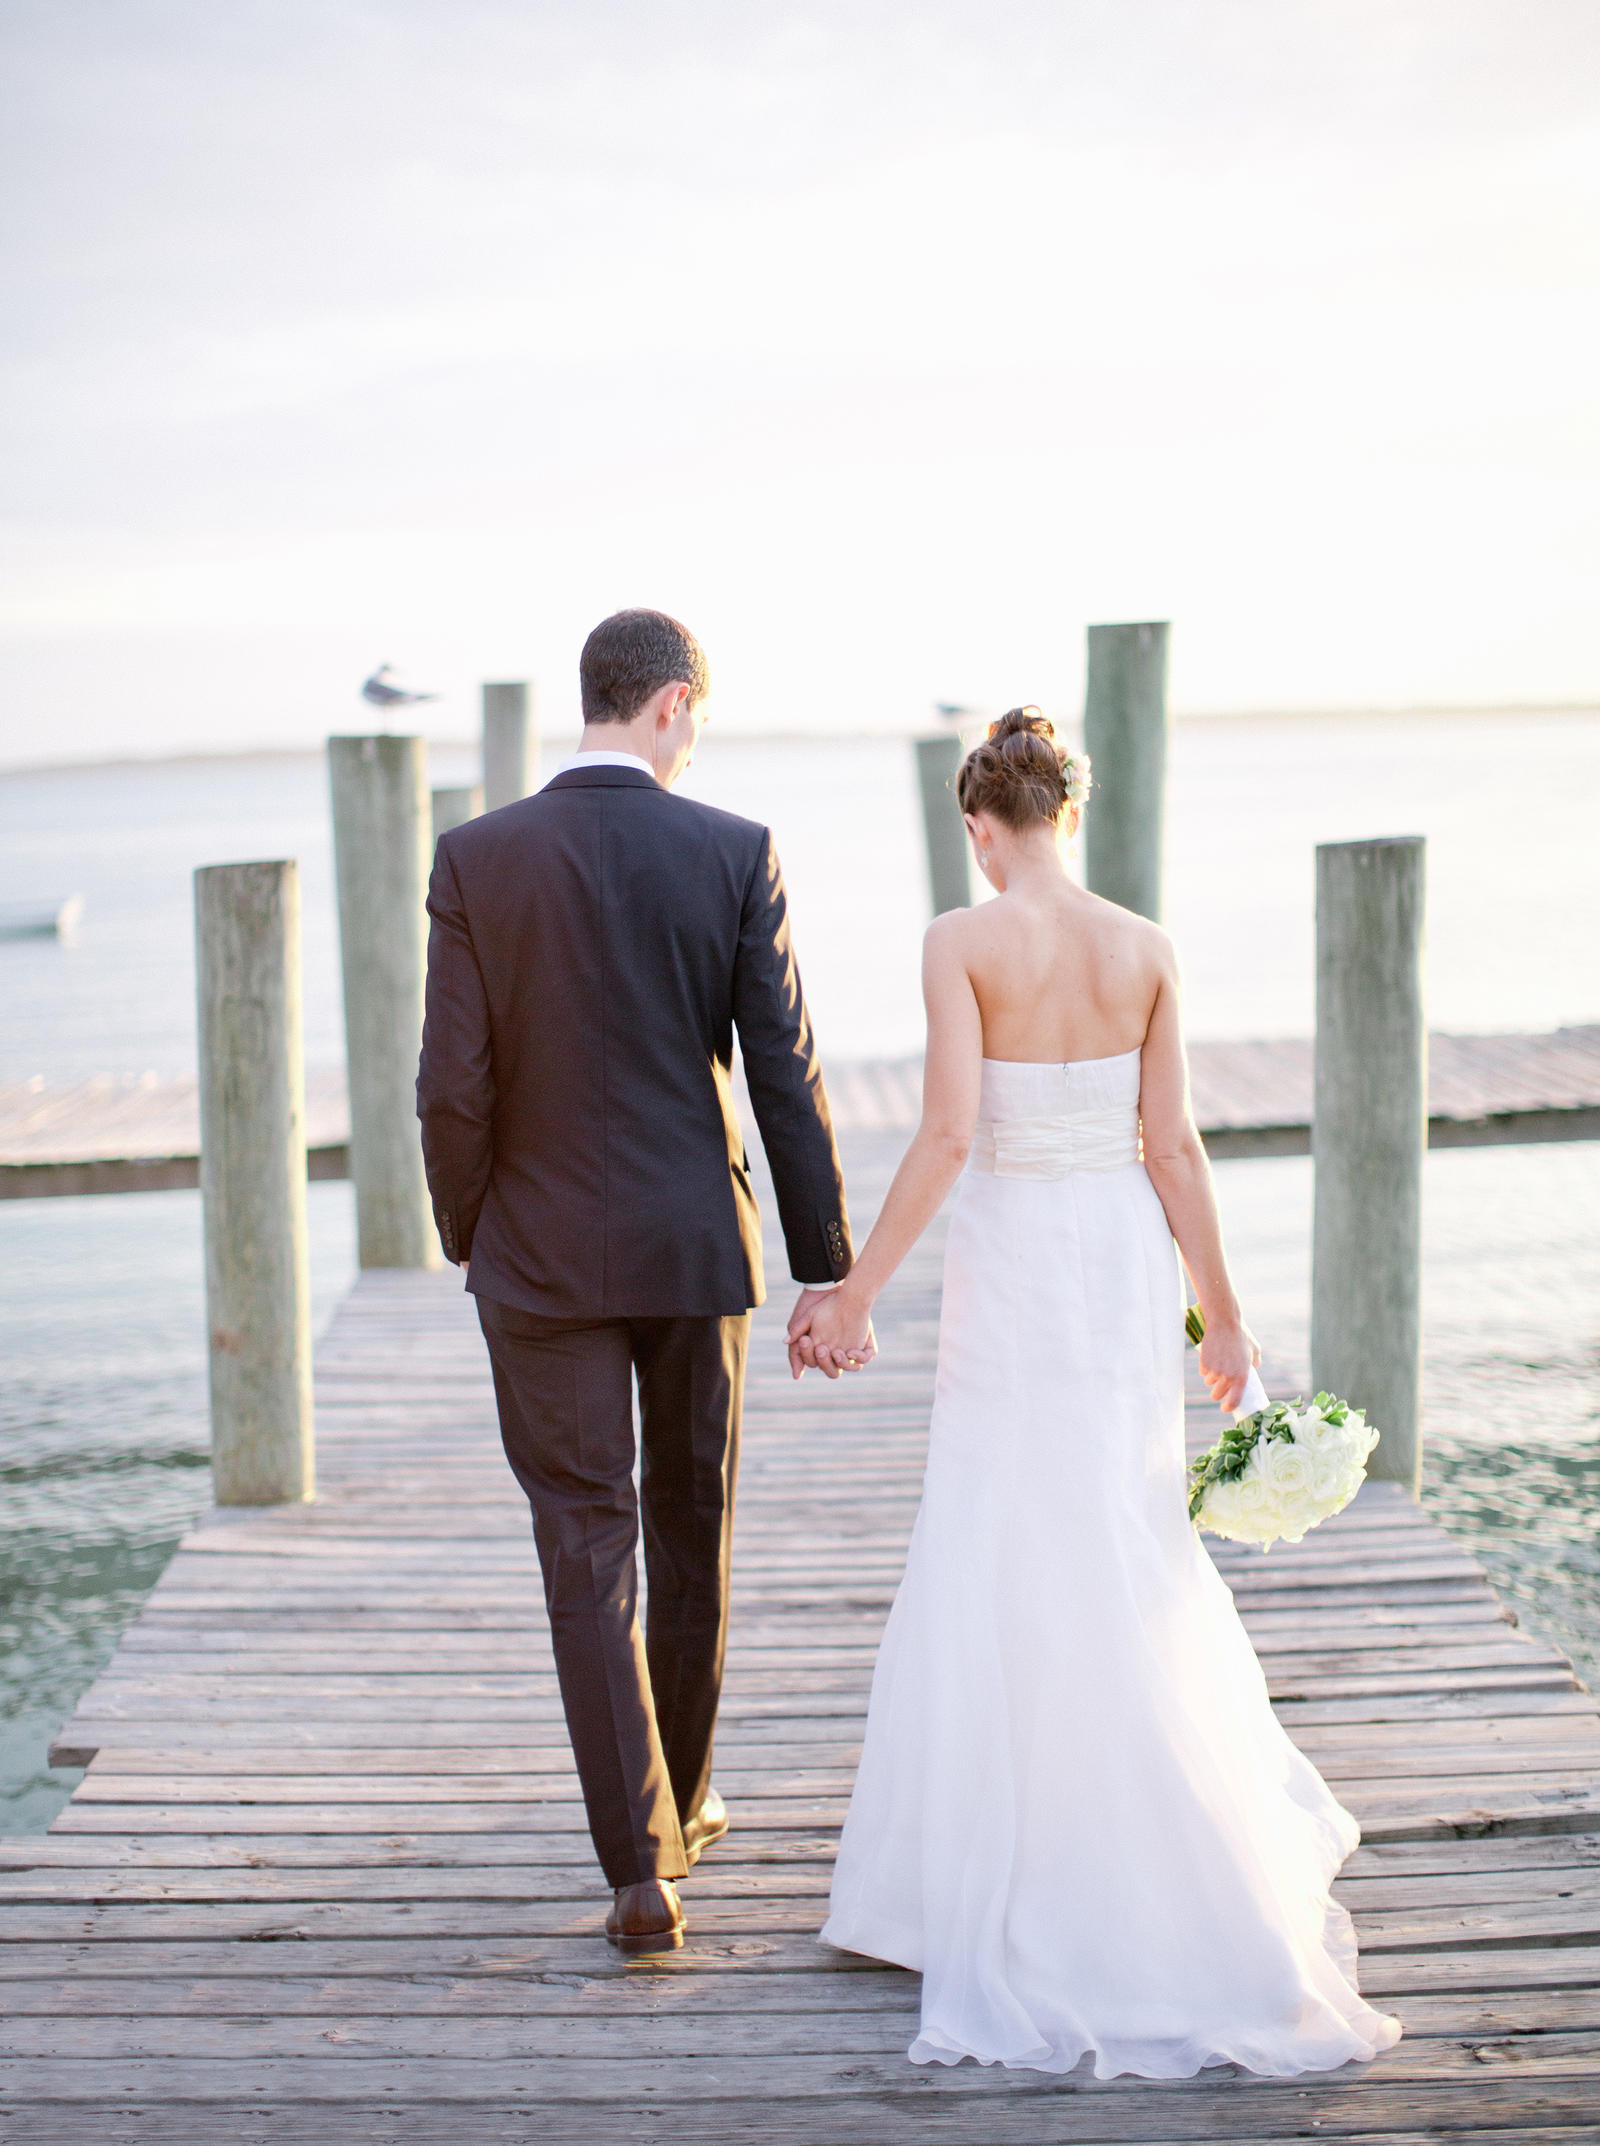 Wedding Photography | Bride and groom walk hand-in-hand on a dock in Harbour Island Bahamas